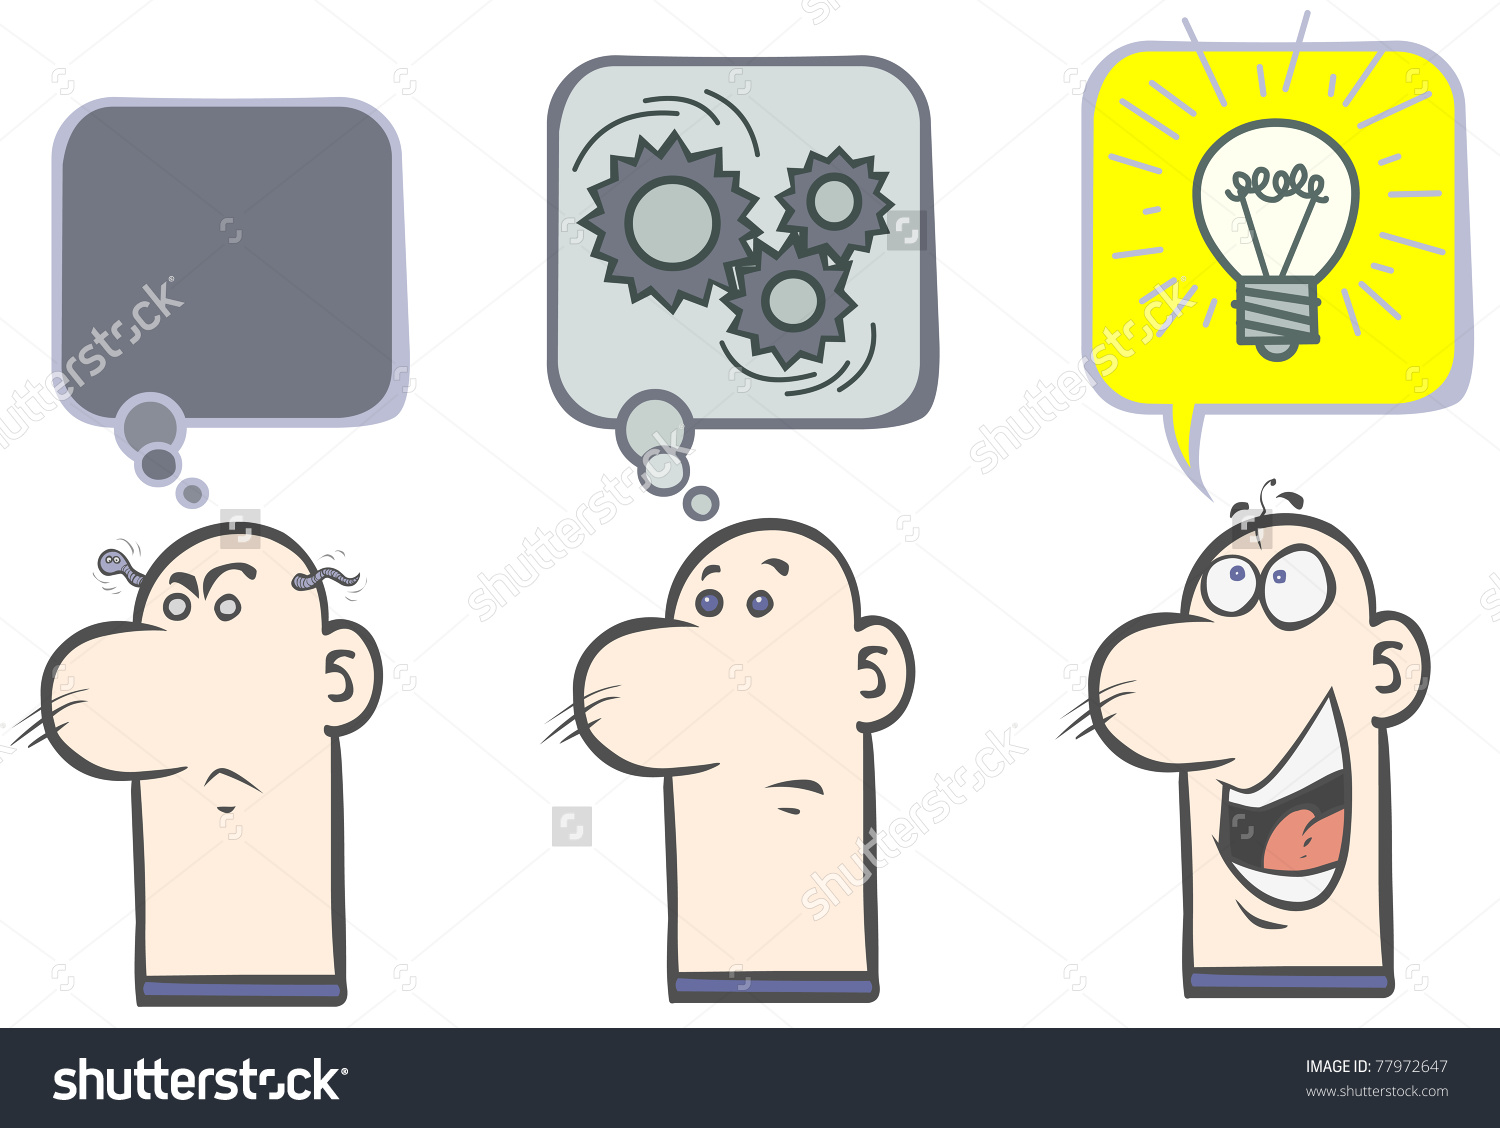 Speculate Man Having Good Idea Stock Vector 77972647.